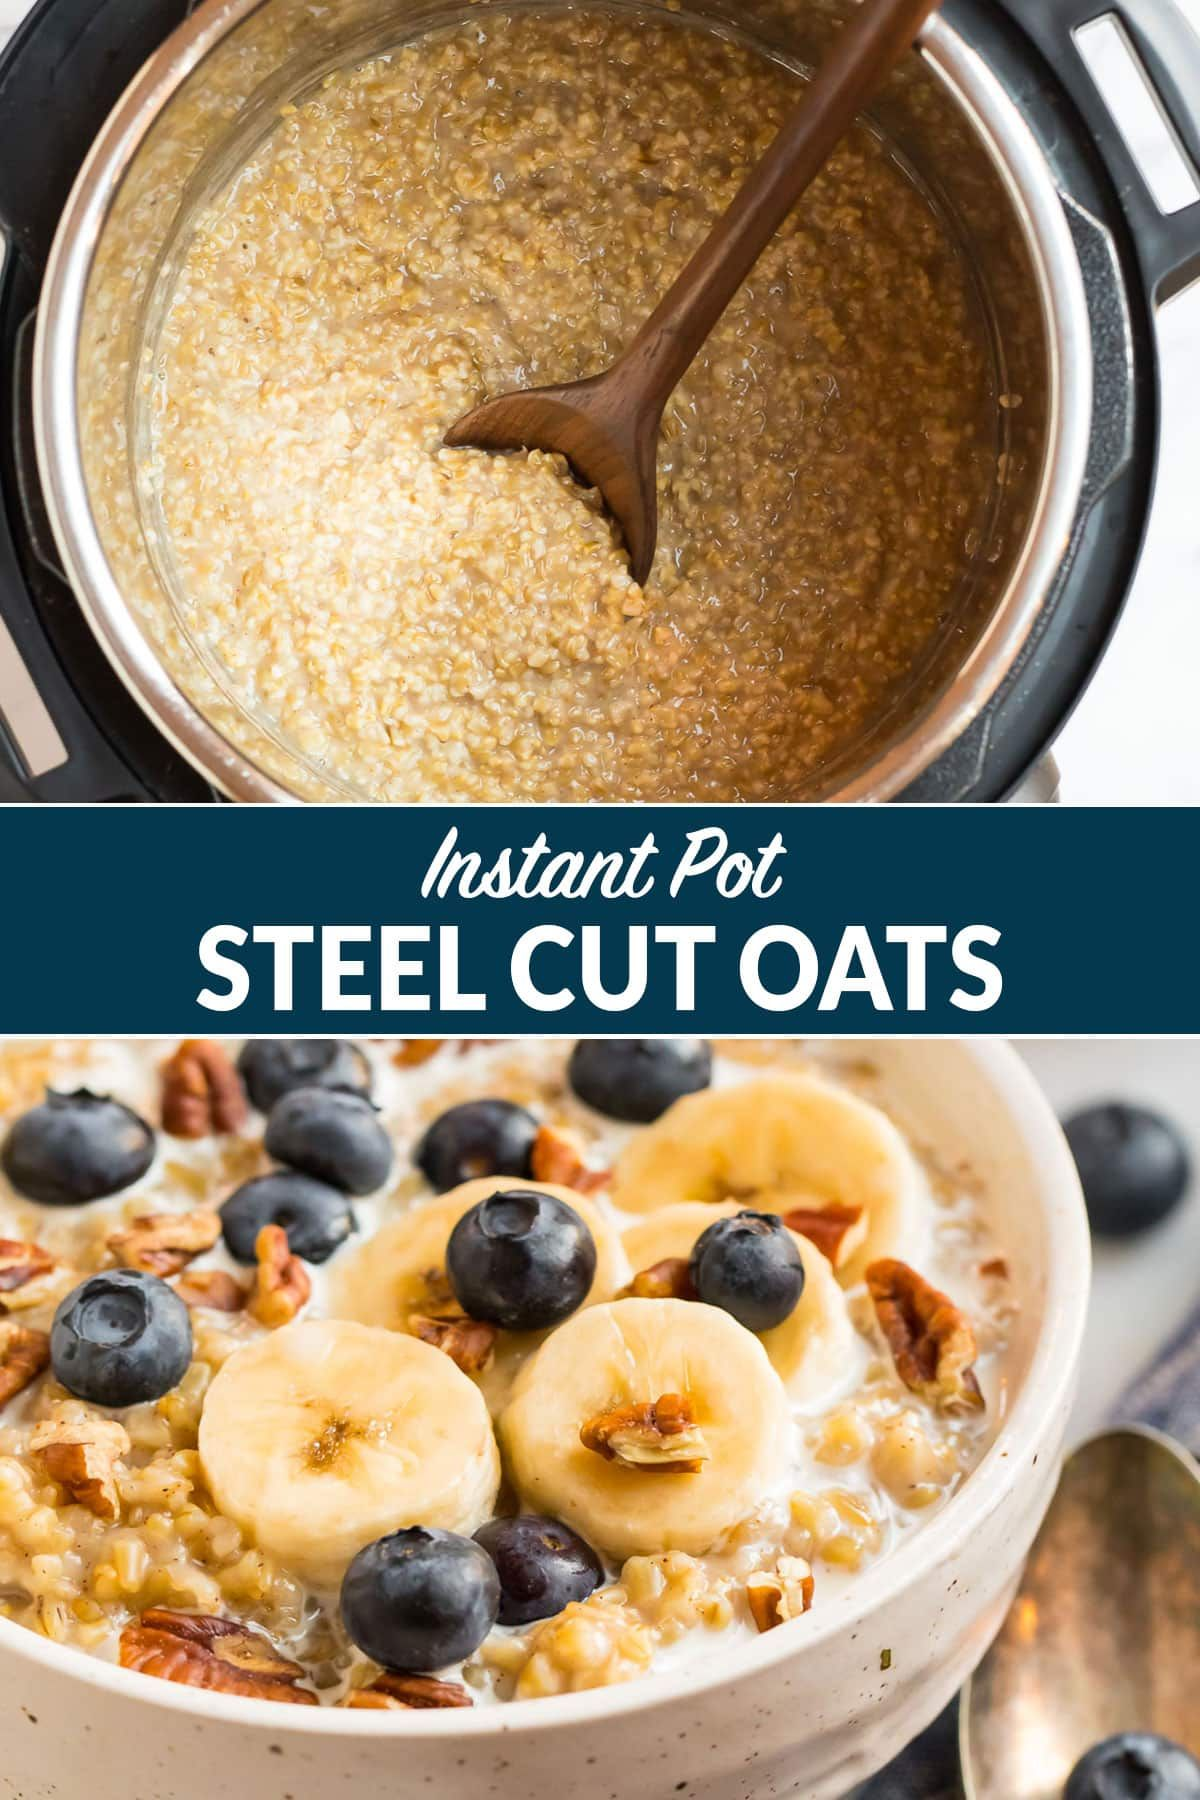 How to cook PERFECT Instant Pot Steel Cut Oats. Easy method for the best steel cut oatmeal that comes out perfectly every time! Just 4 minutes of pressure cook time. A great way to enjoy the goodness of oats, made hands free. Vegan. Gluten-Free. #instantpotsteelcutoats #instantpotrecipe #steelcutoats #perfectoatseverytime #healthybreakfastrecipe #wellplated via @wellplated